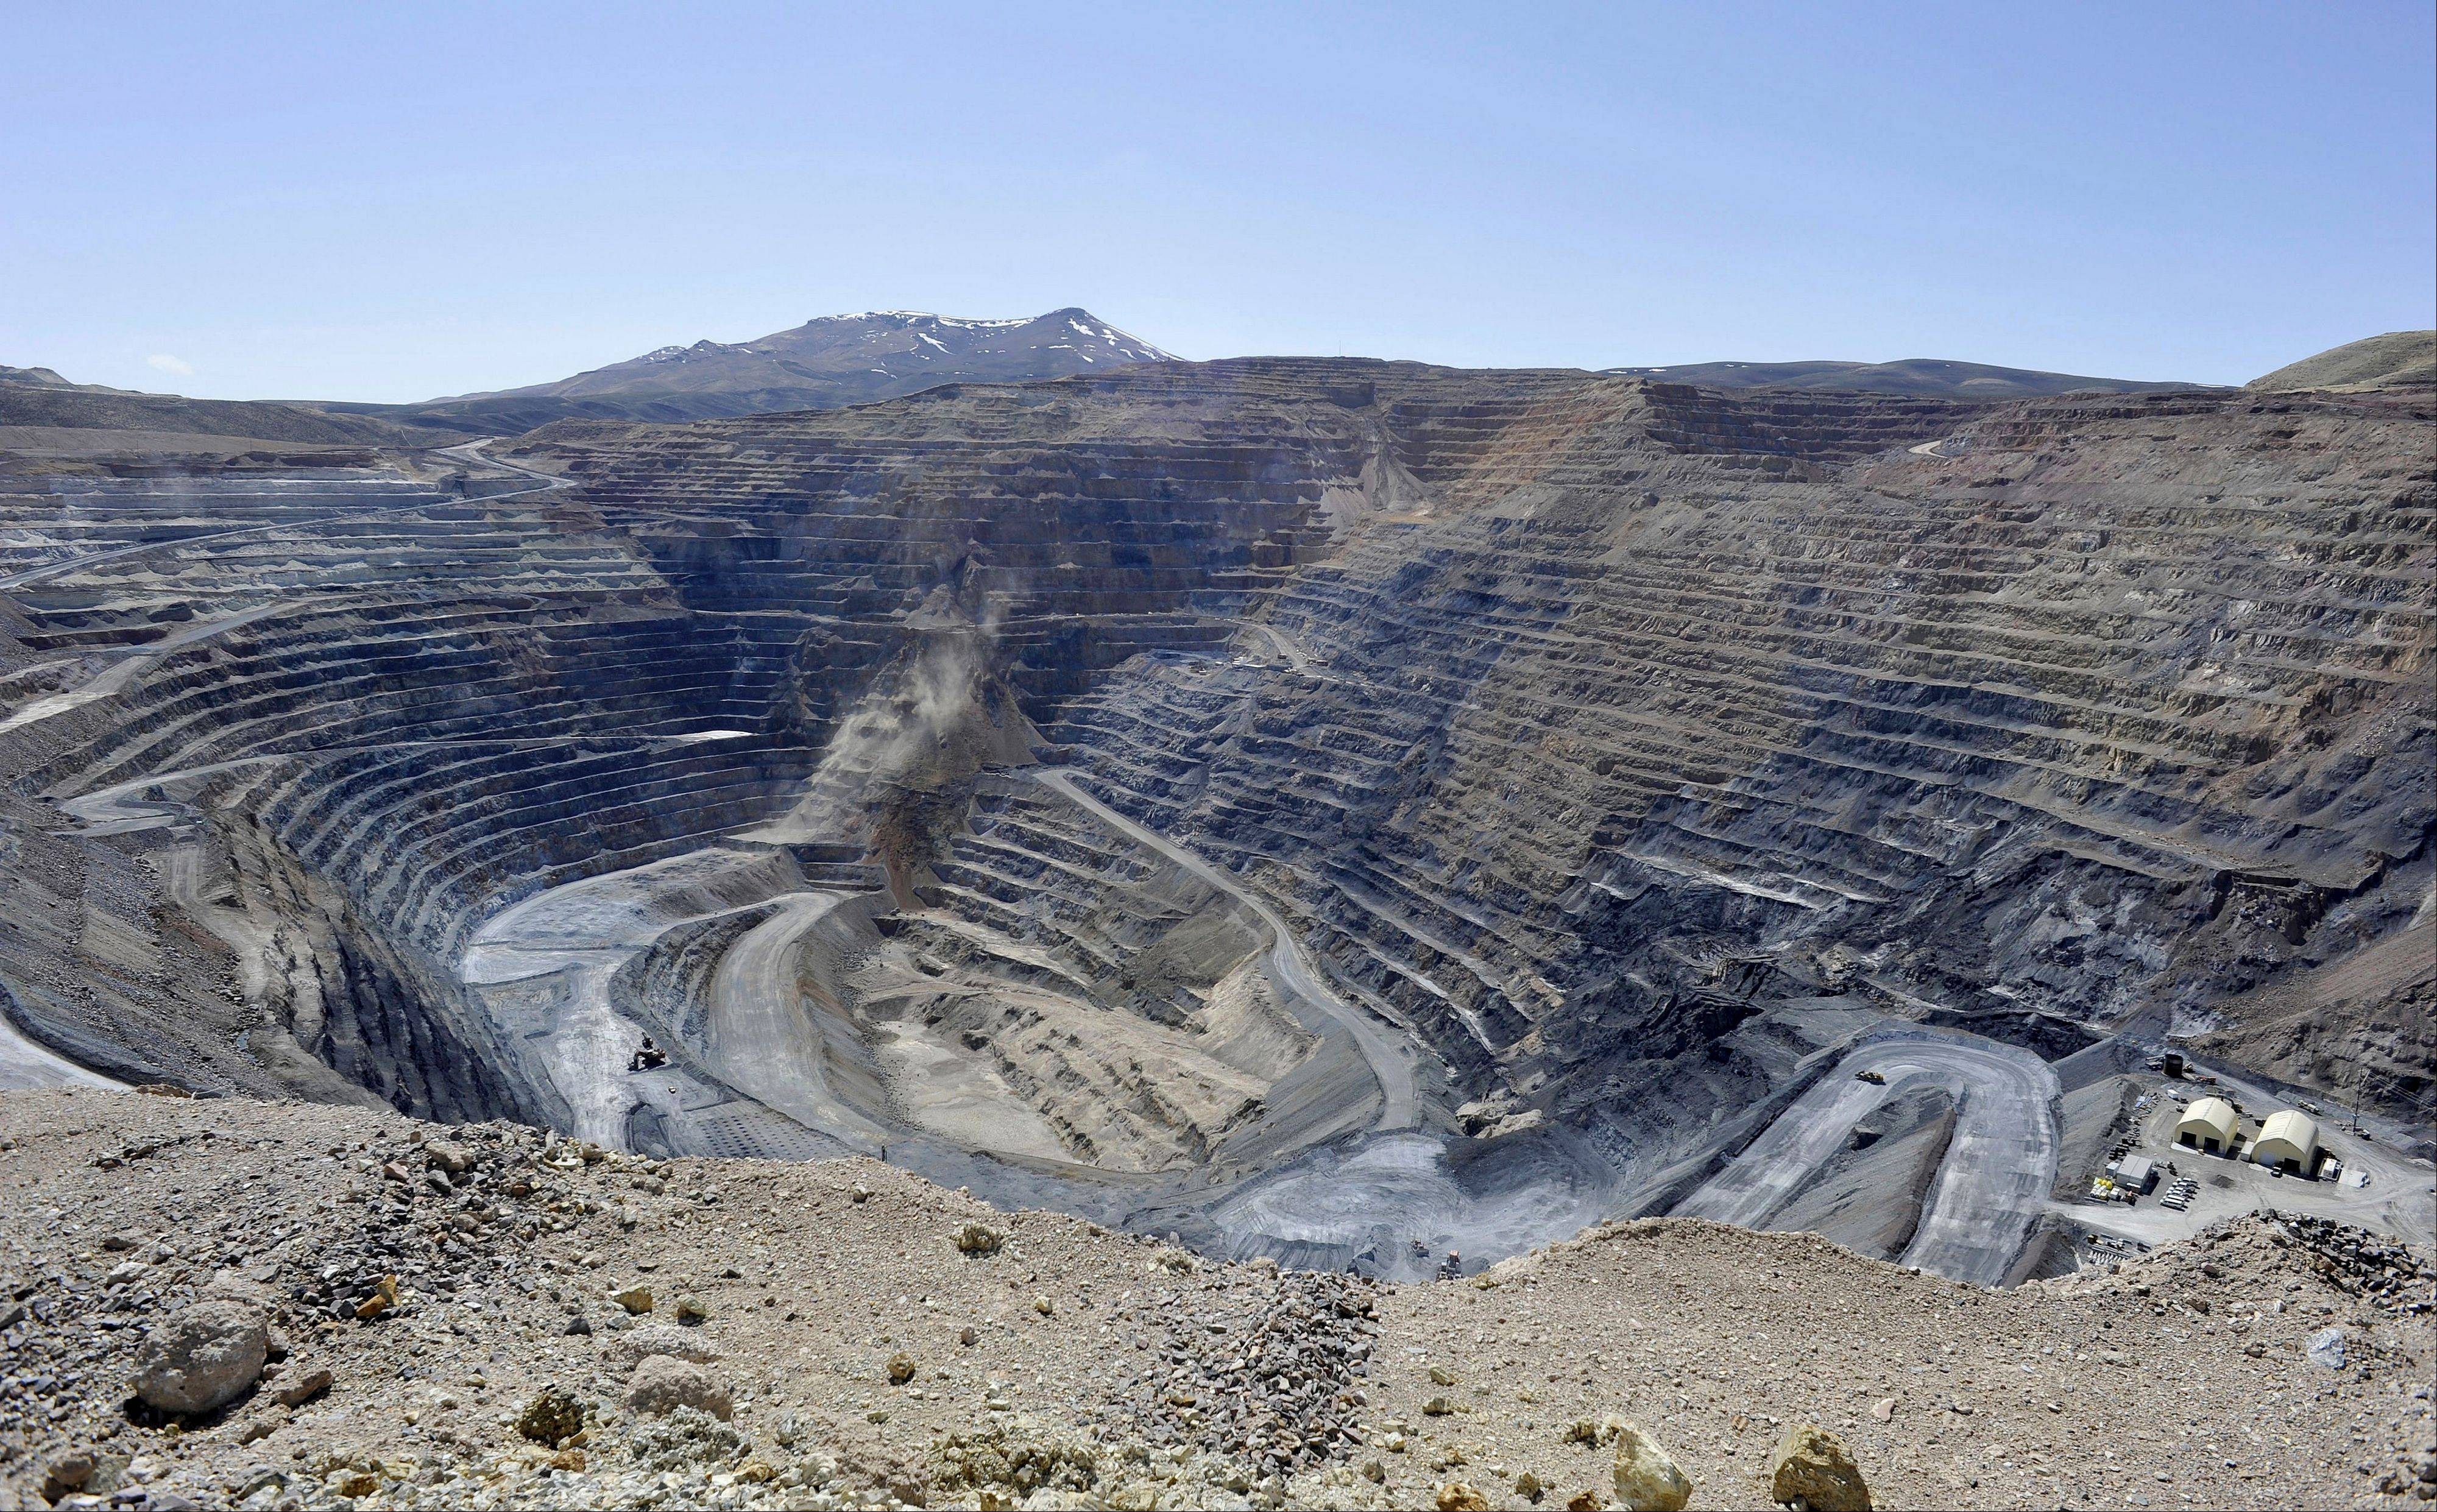 The Newmont Gold Quarry pit in Battle Mountain, Nev. While the U.S. government reaps billions of dollars in royalties each year from fossil fuels extracted from federal public lands and waters, it does not collect any royalties from gold, uranium or other metals mined from the same lands.